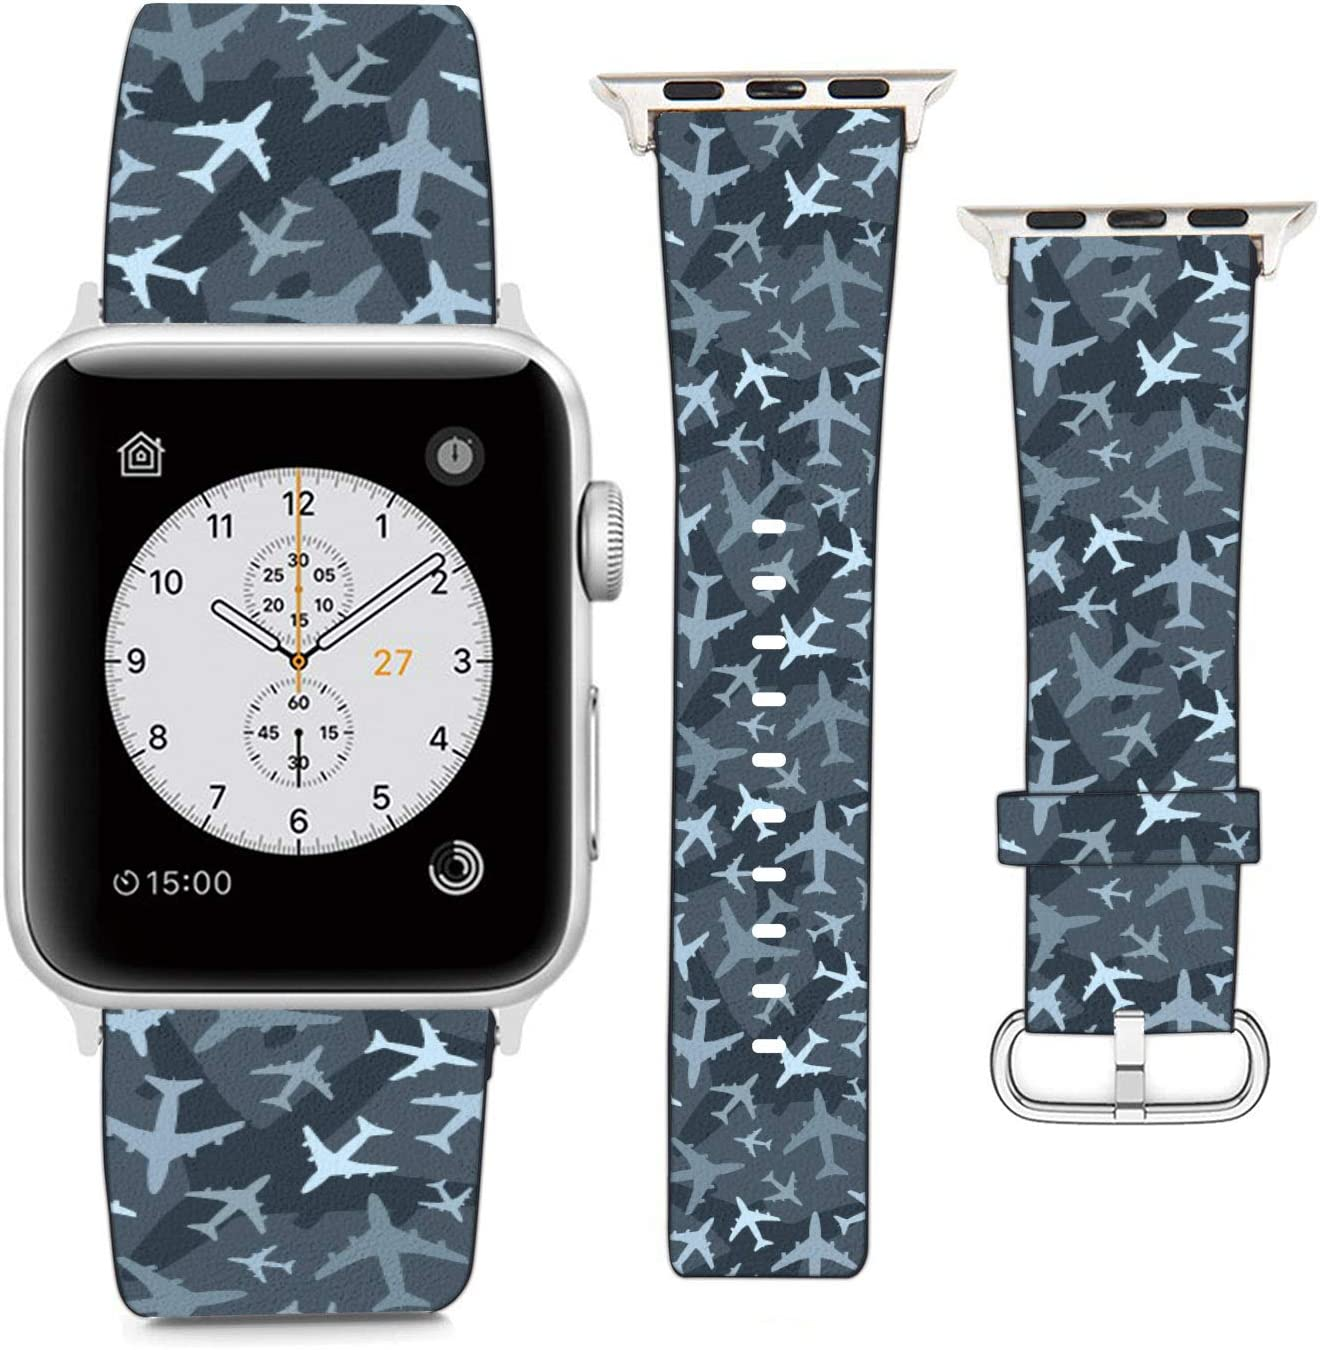 (Airplane Camouflage) Patterned Leather Wristband Strap Compatible with Apple Watch Series 5/4/3/2/1 gen,Replacement for iWatch 38mm / 40mm Bands